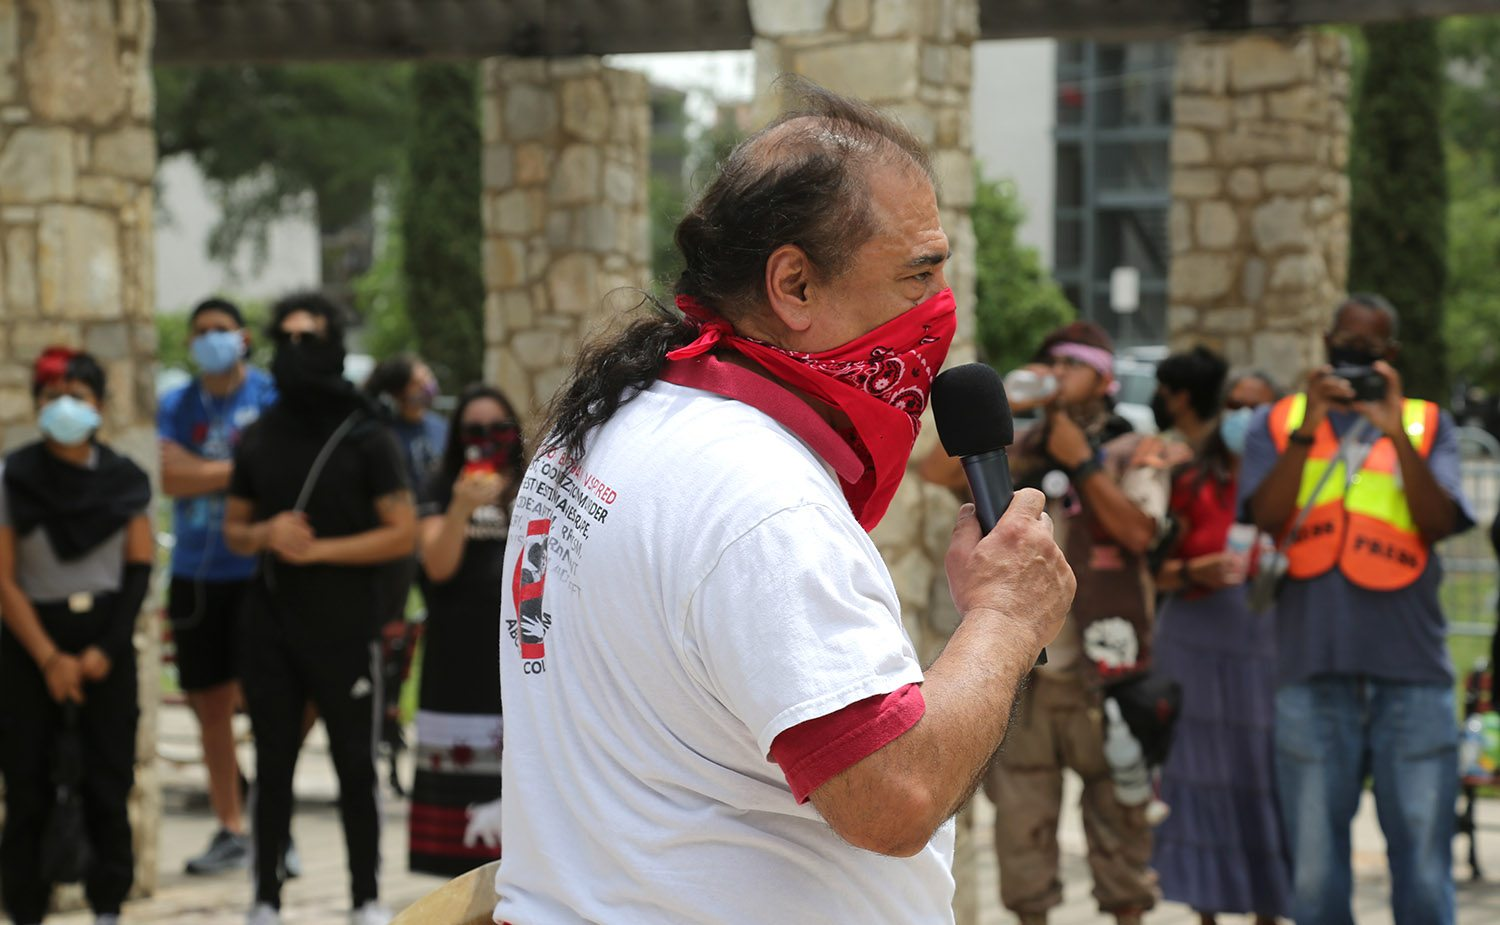 Antonio Diaz speaks to roughly 50 people during a protest advocating for the removal of the Christopher Columbus statue on Saturday, June 27, 2020, at Columbus Park, 200 Columbus St. Photo by Ben Olivo | Heron